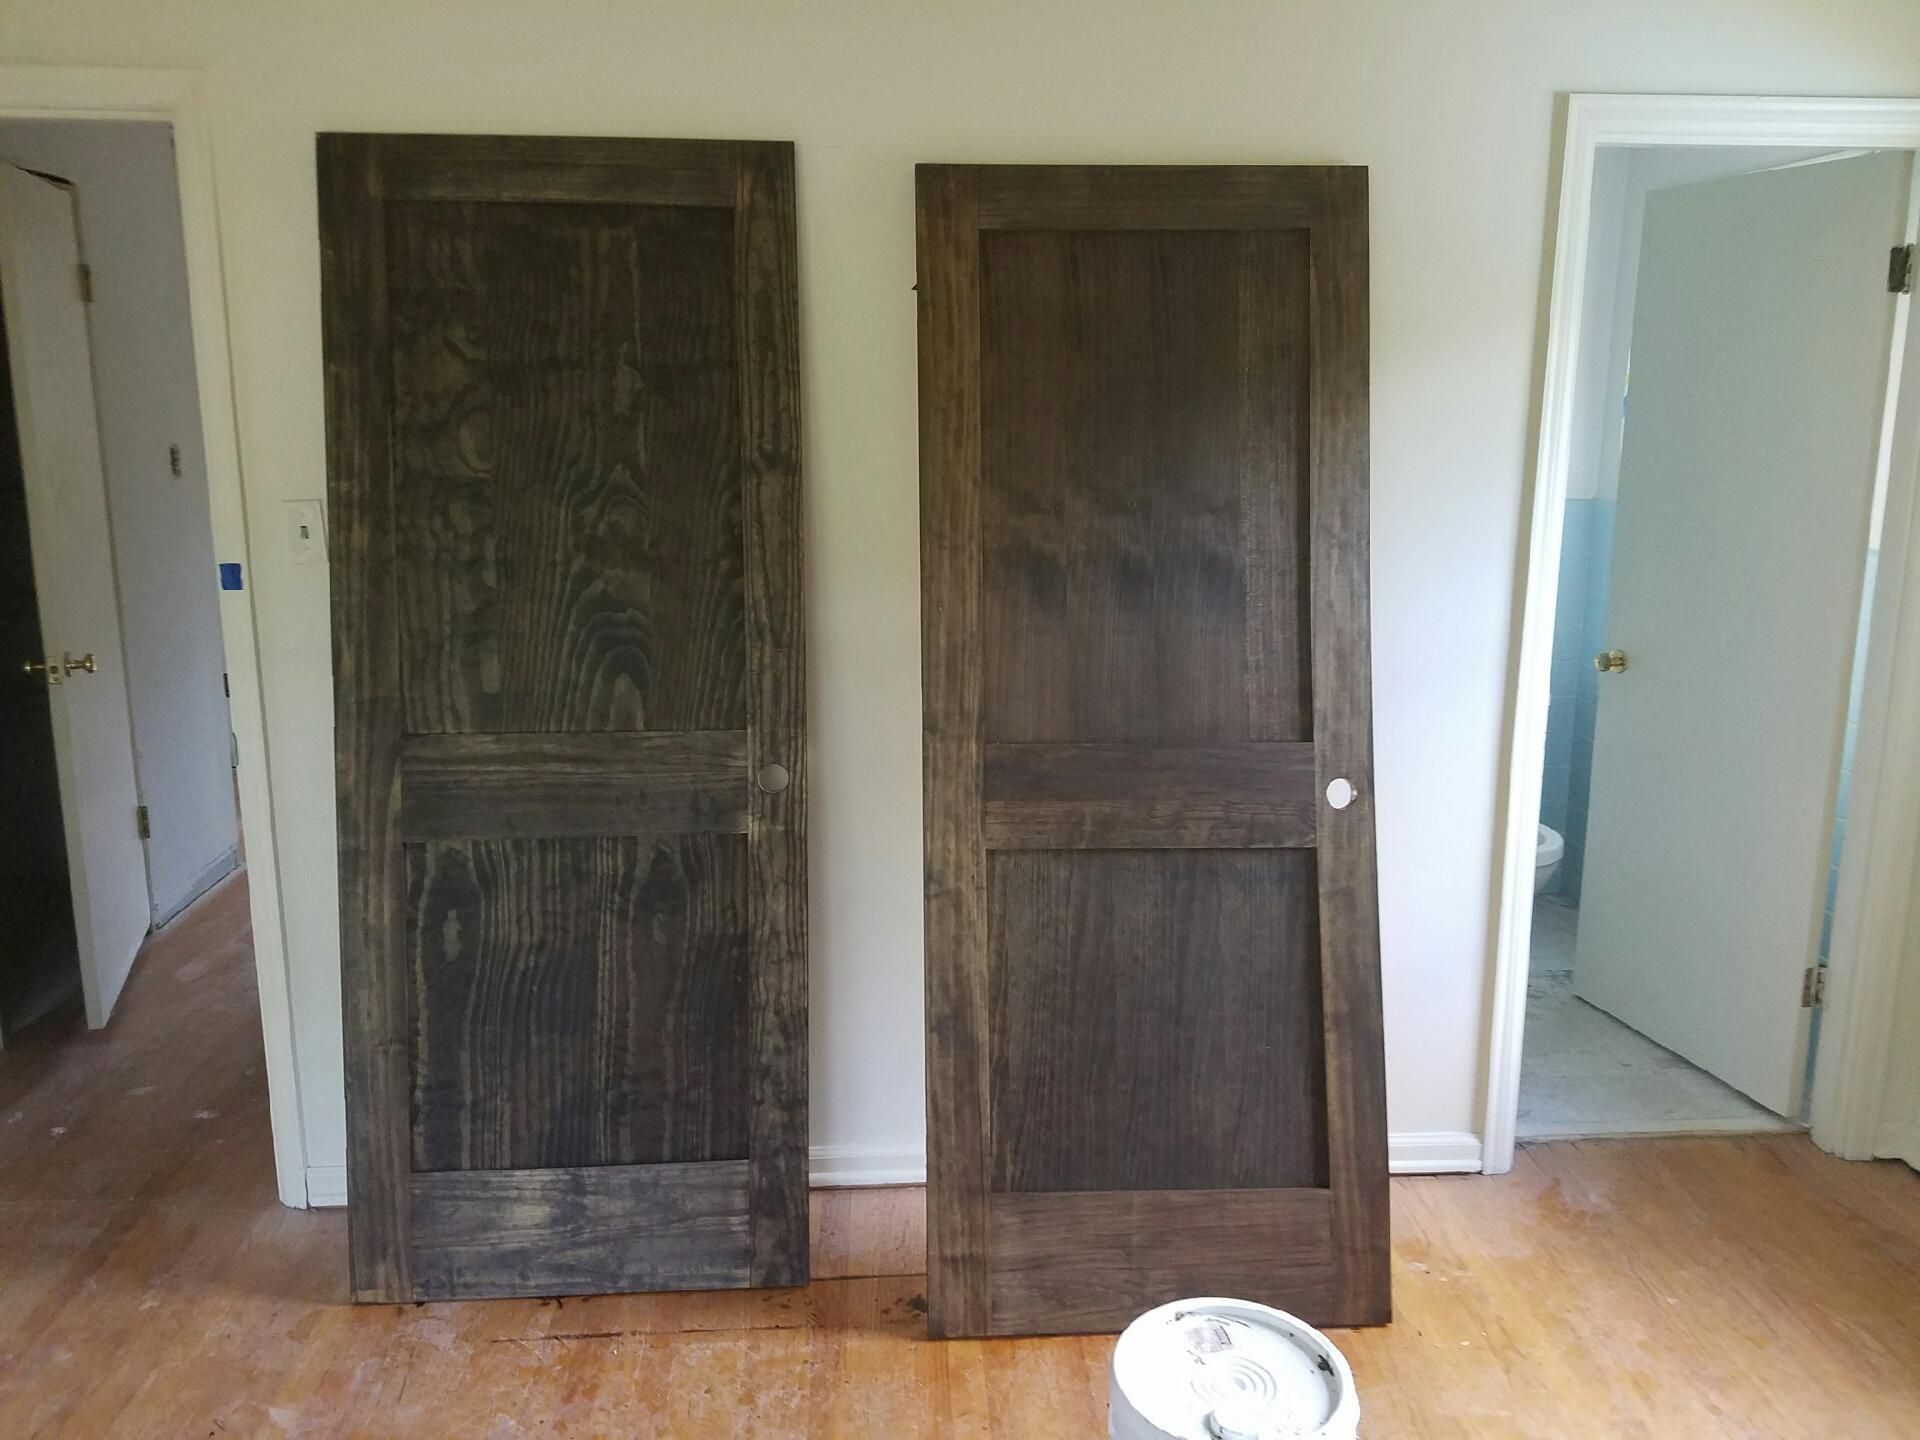 Minwax wood stains on pine minwax wood finish - Wood Conditioner Makes All The Difference Pine Doors Minwax Jacobean Stain On Left